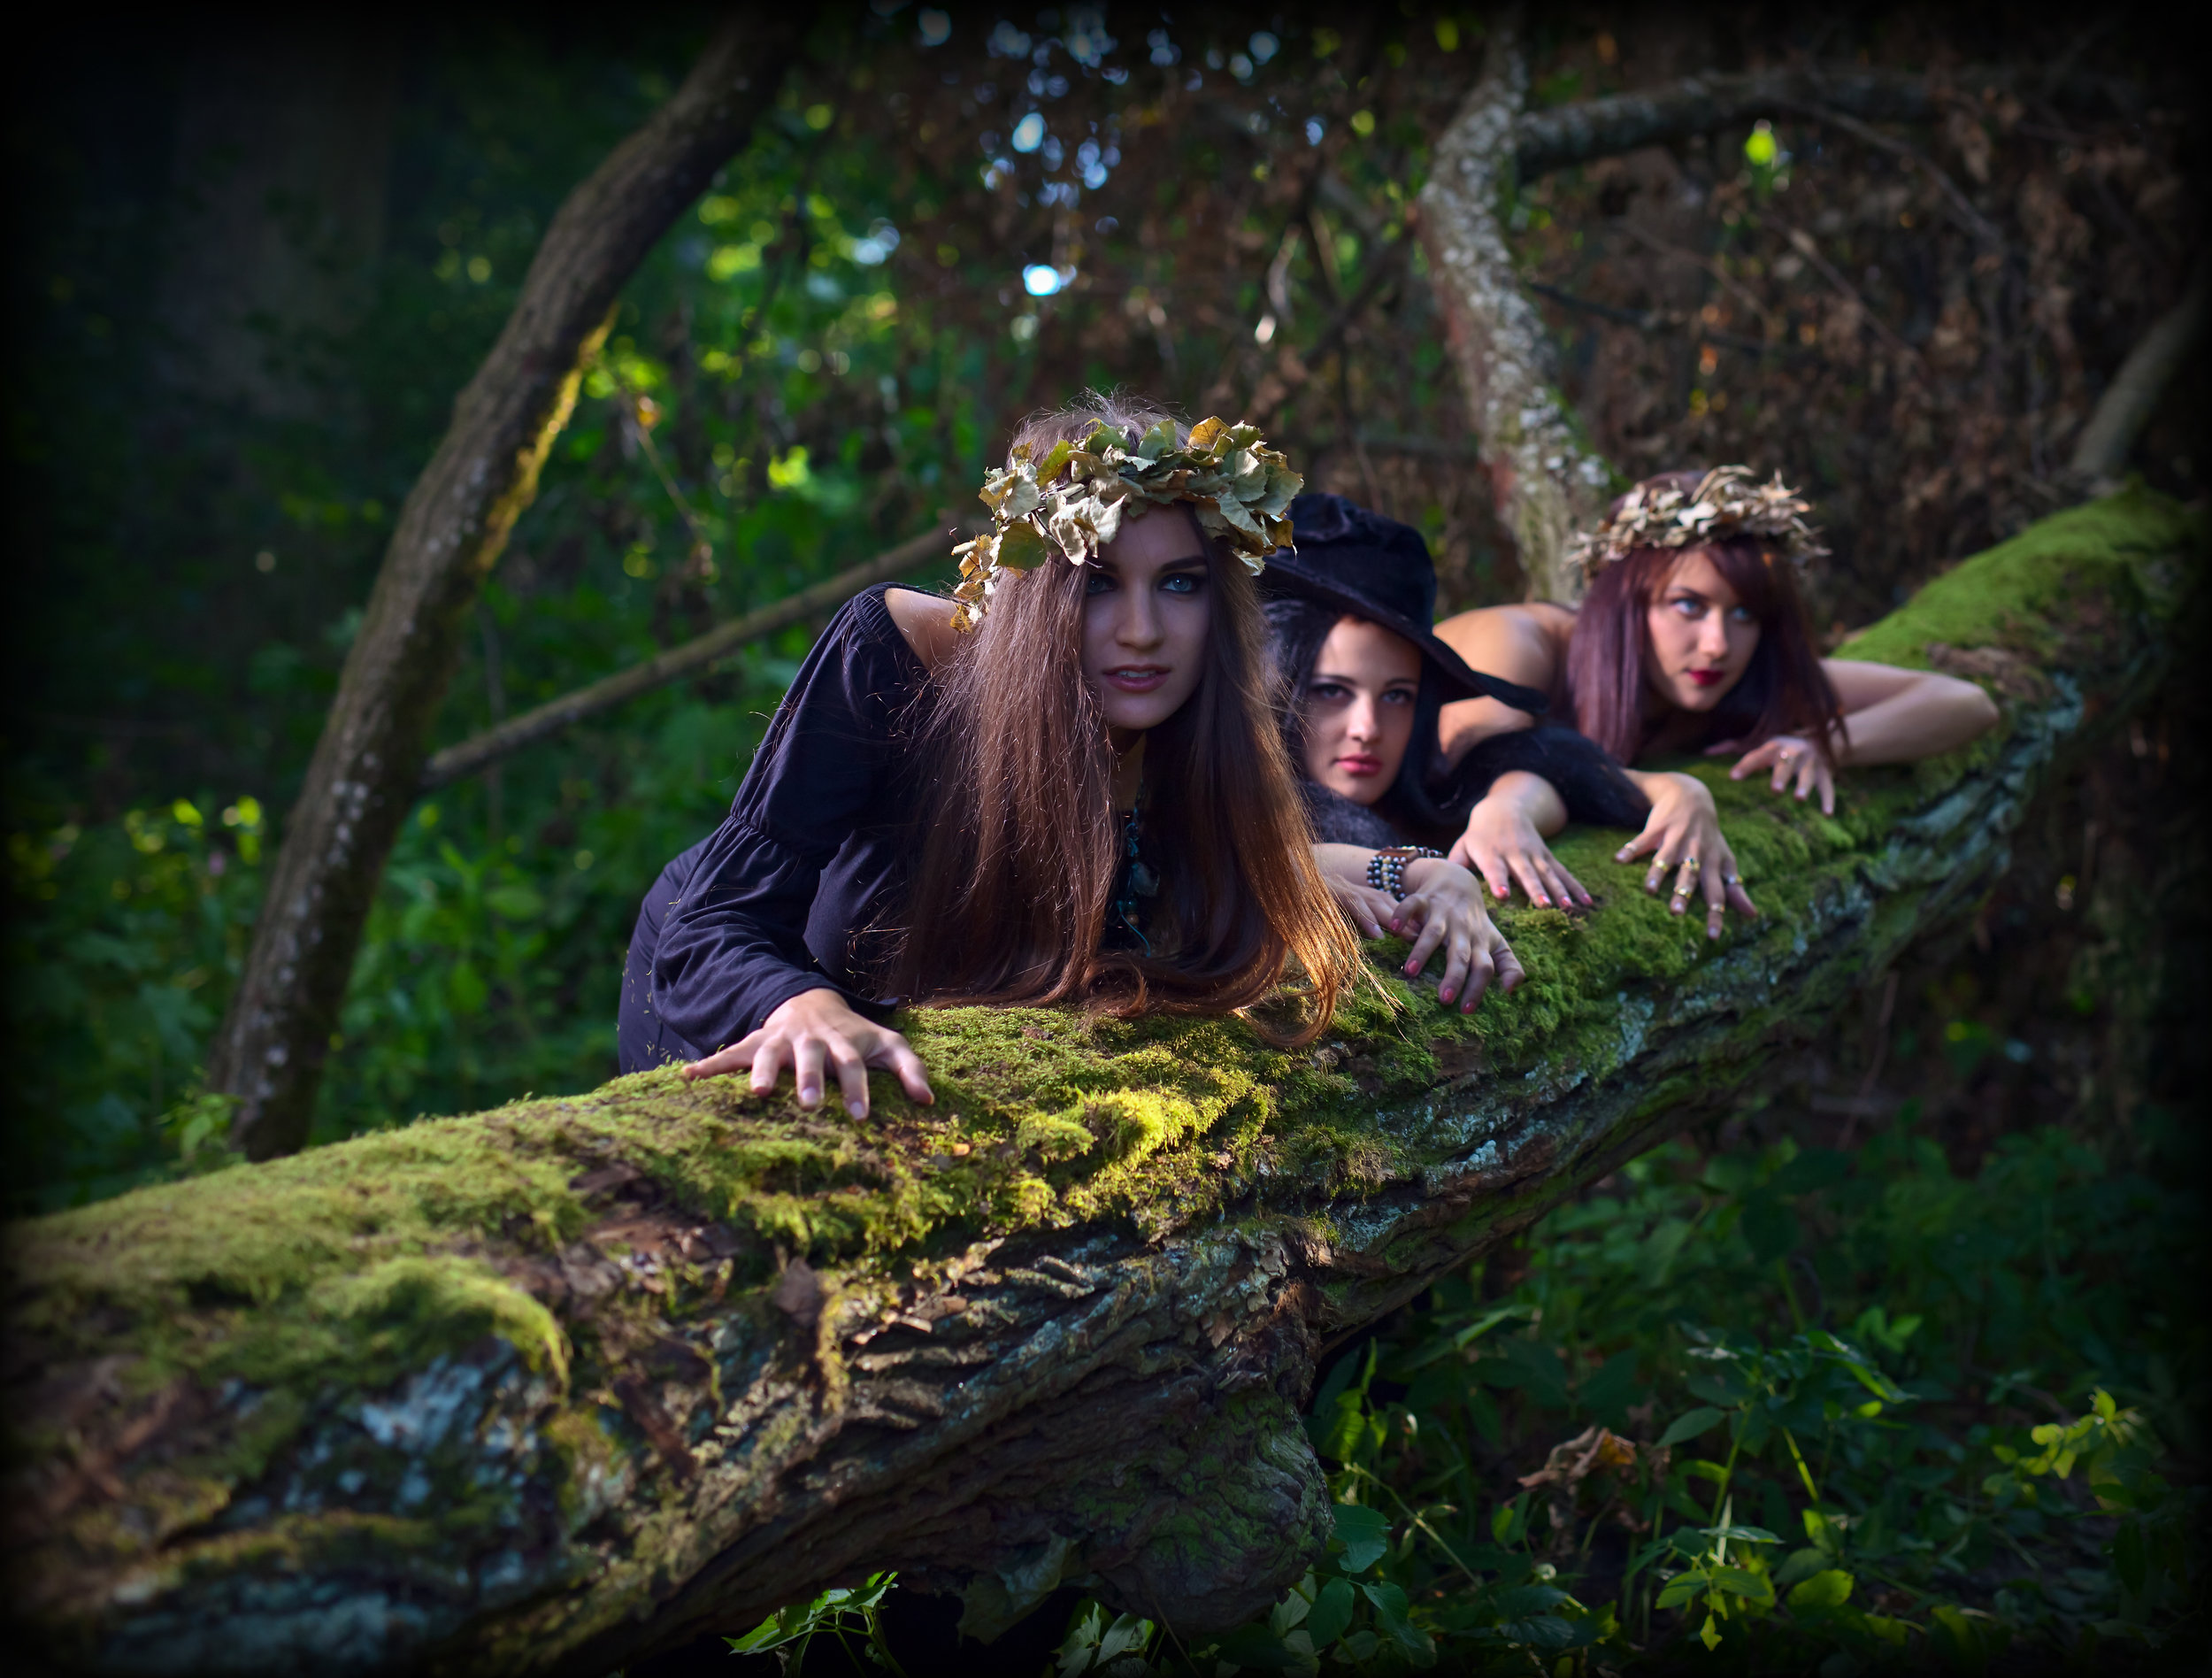 Wild witches in the woods.